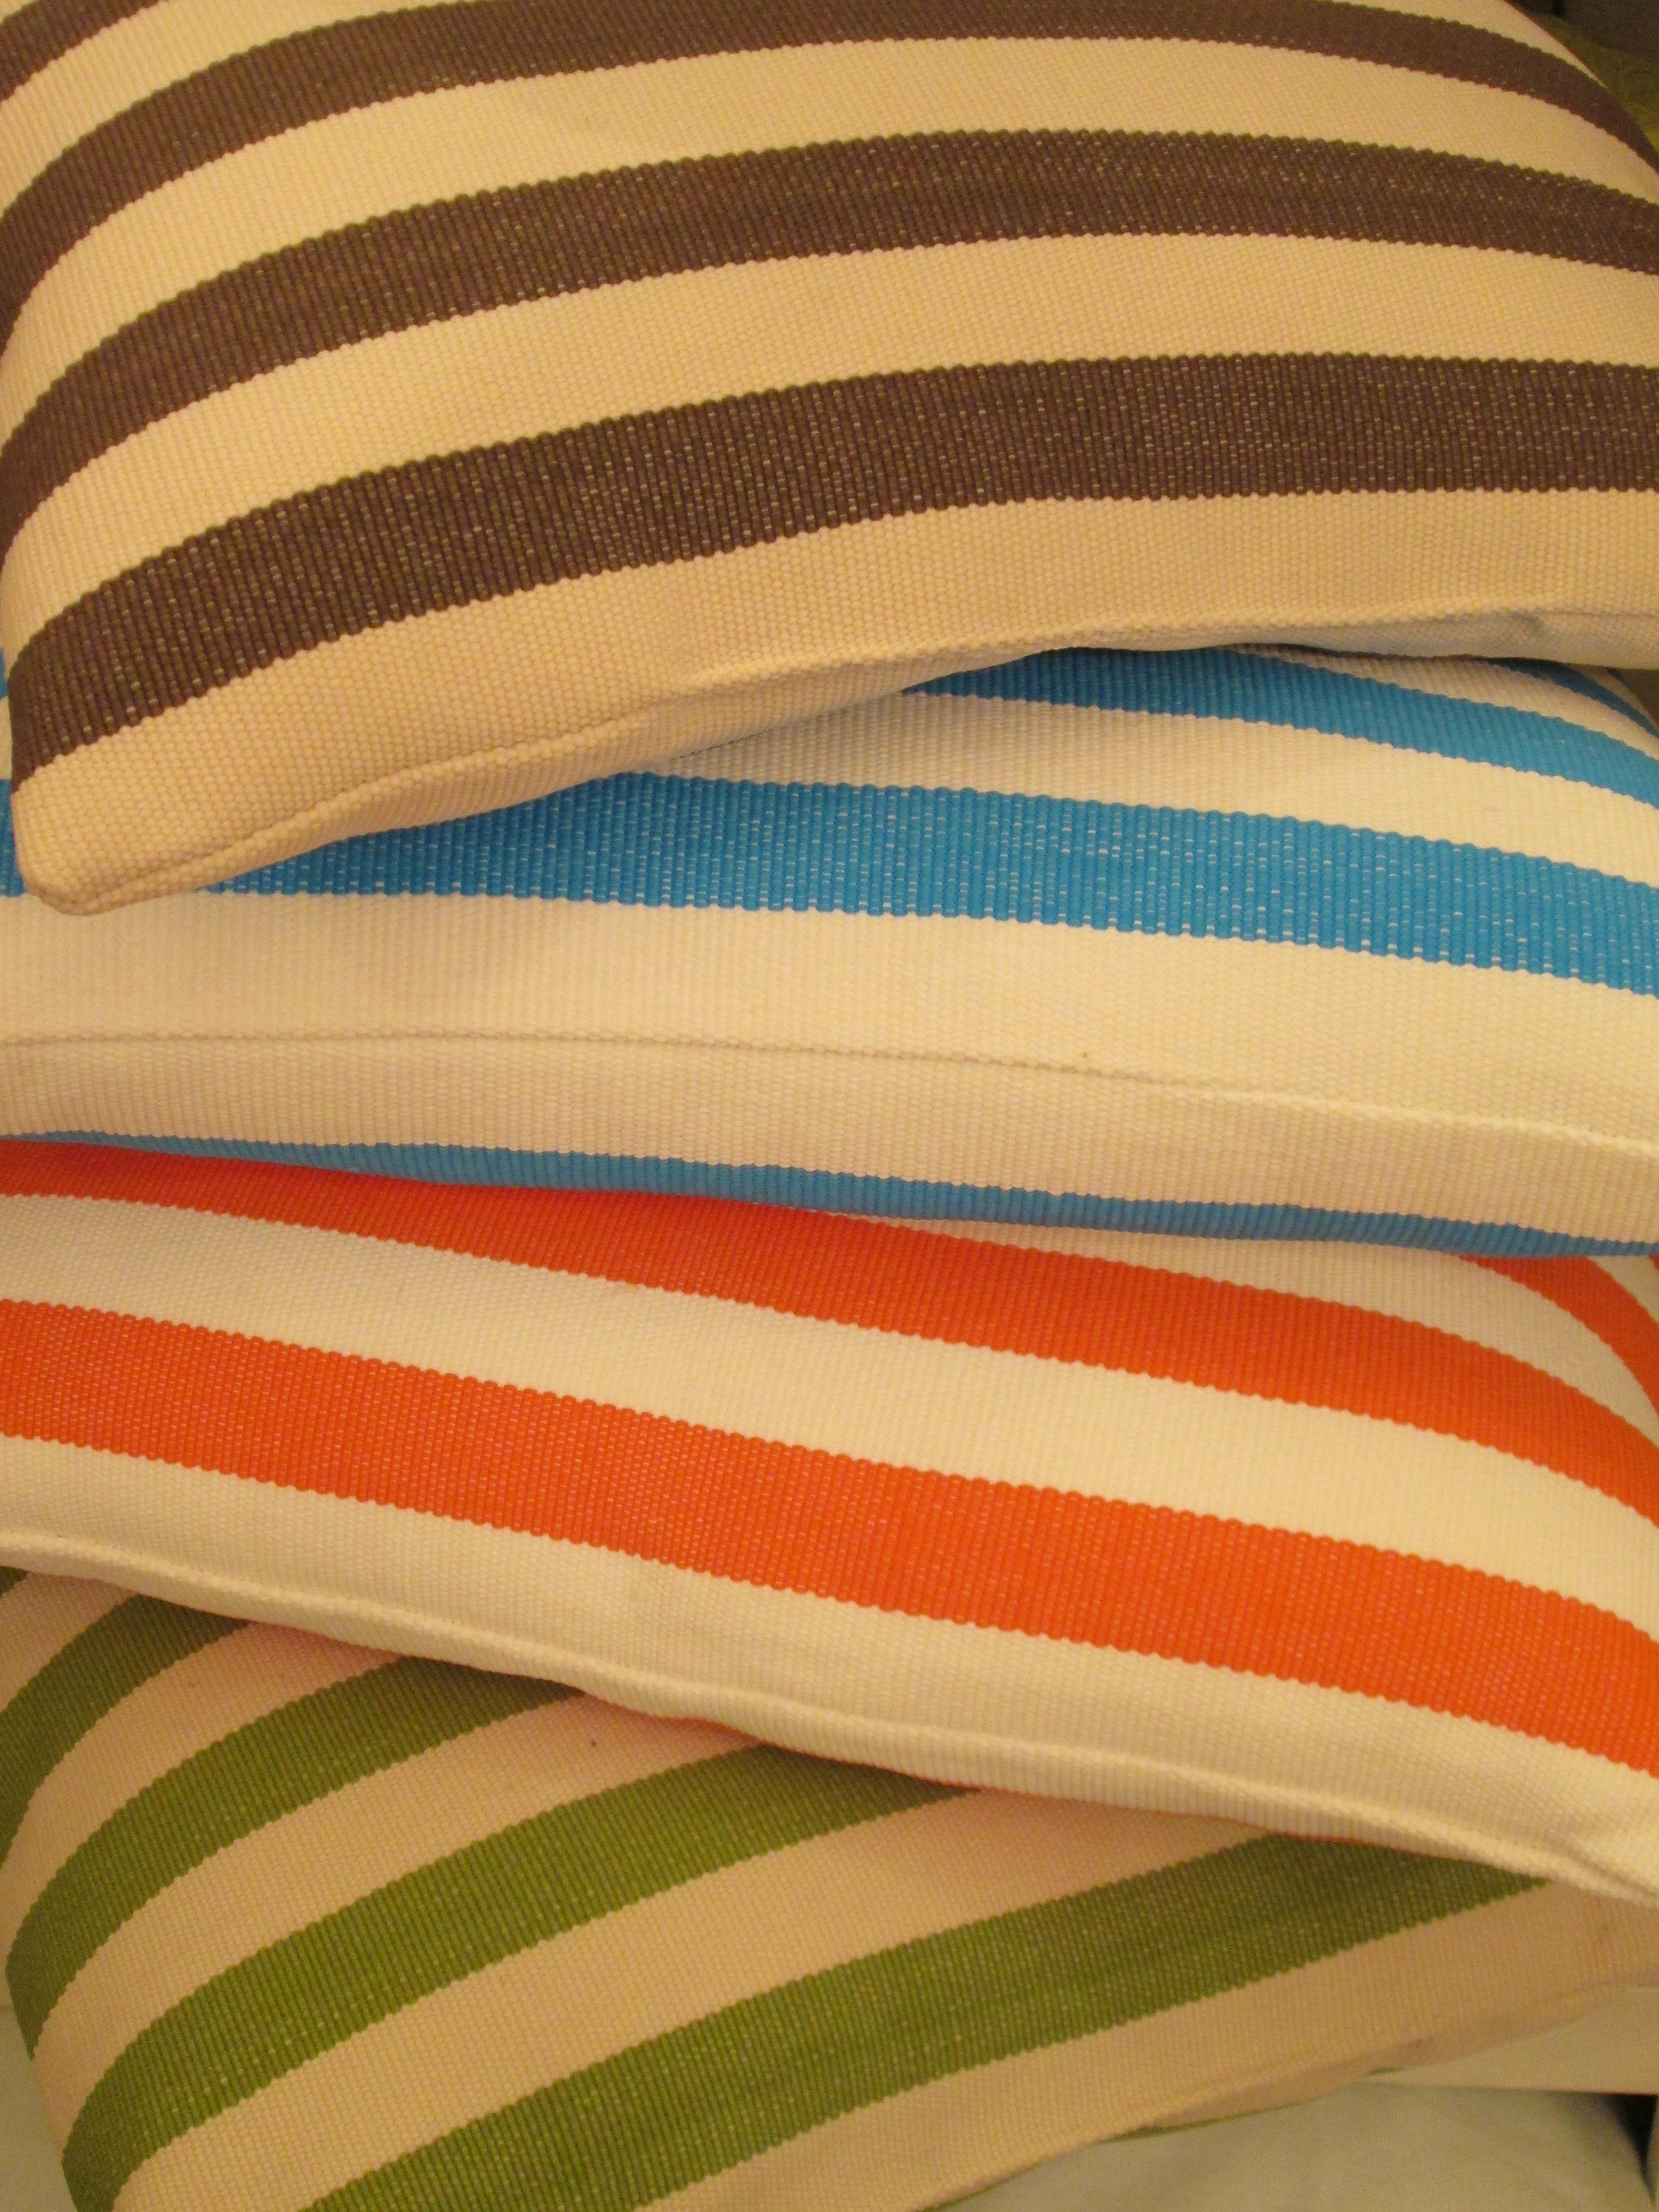 Indoor Outdoor Pillows They Can Get Wet If On Your Patio Or Just As Fun Inside Accenting That New Sofa Or Chair Indoor Outdoor Pillows Pillows Getting Wet